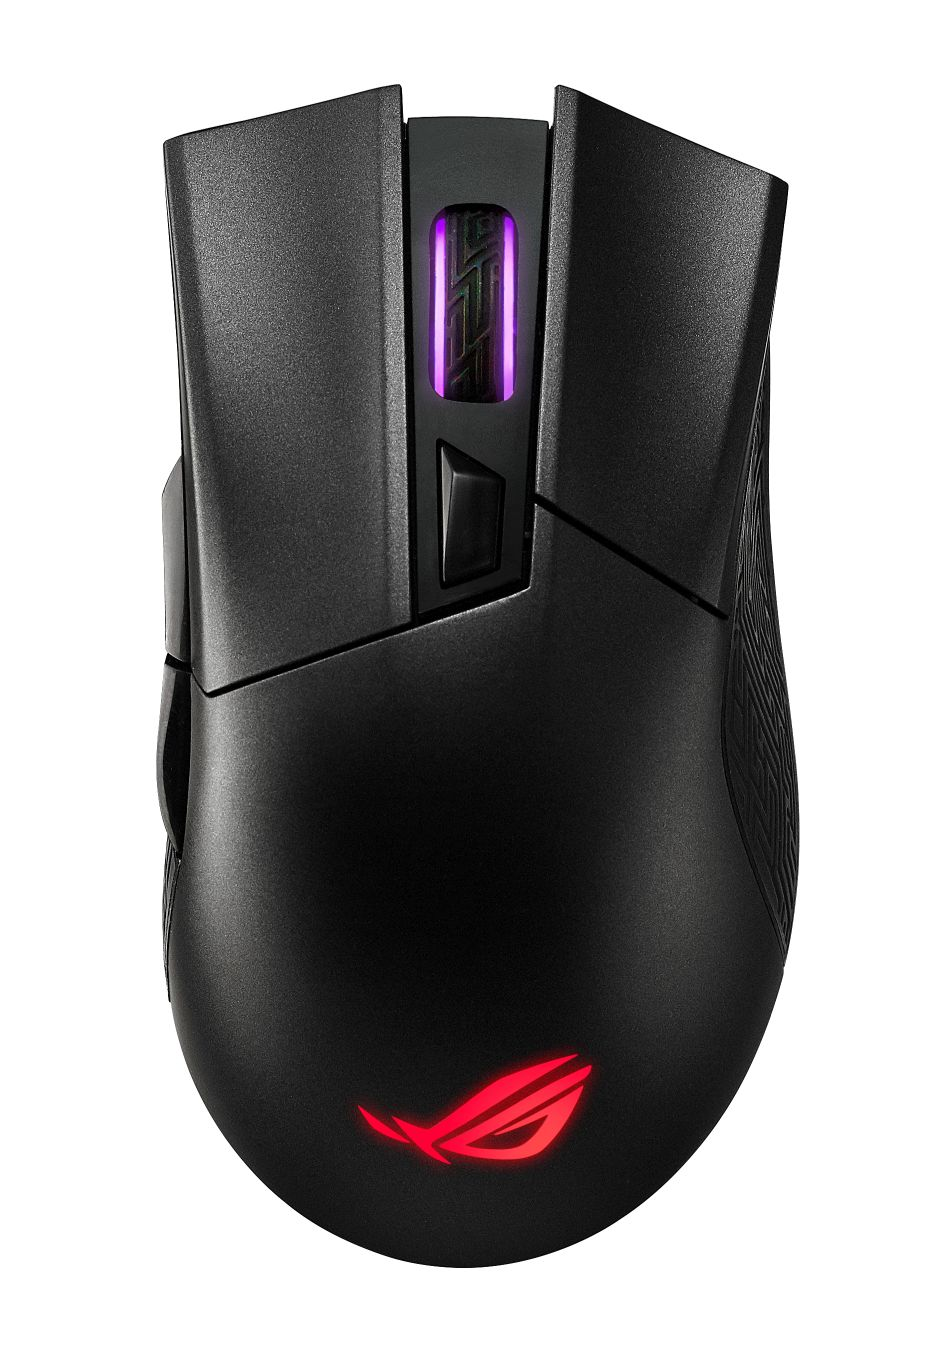 ゲーミングマウス「ROG Gladius II Wireless」2